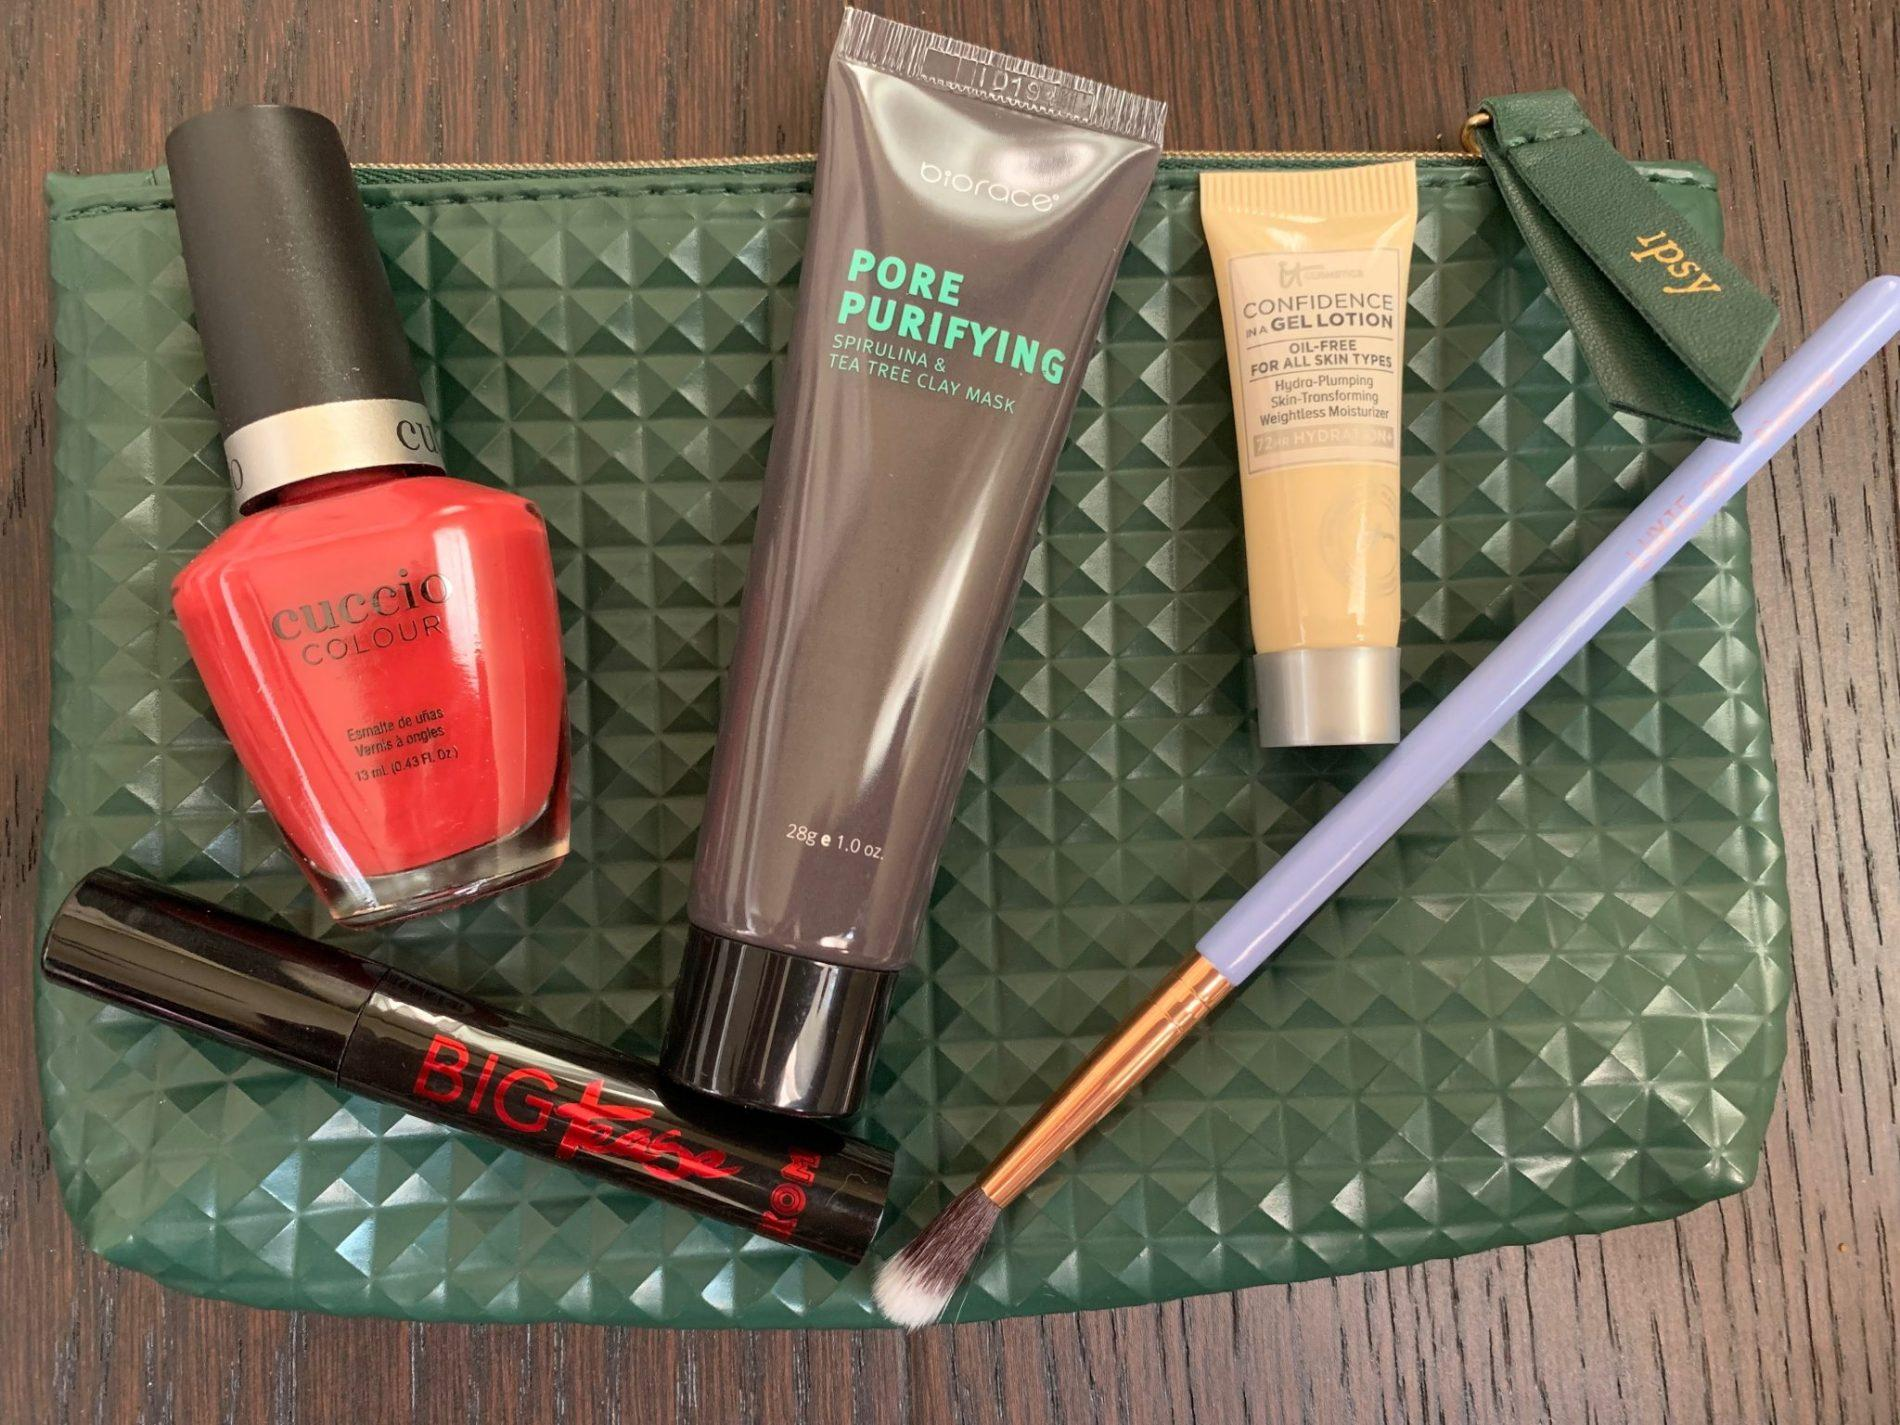 ipsy Review – August 2019